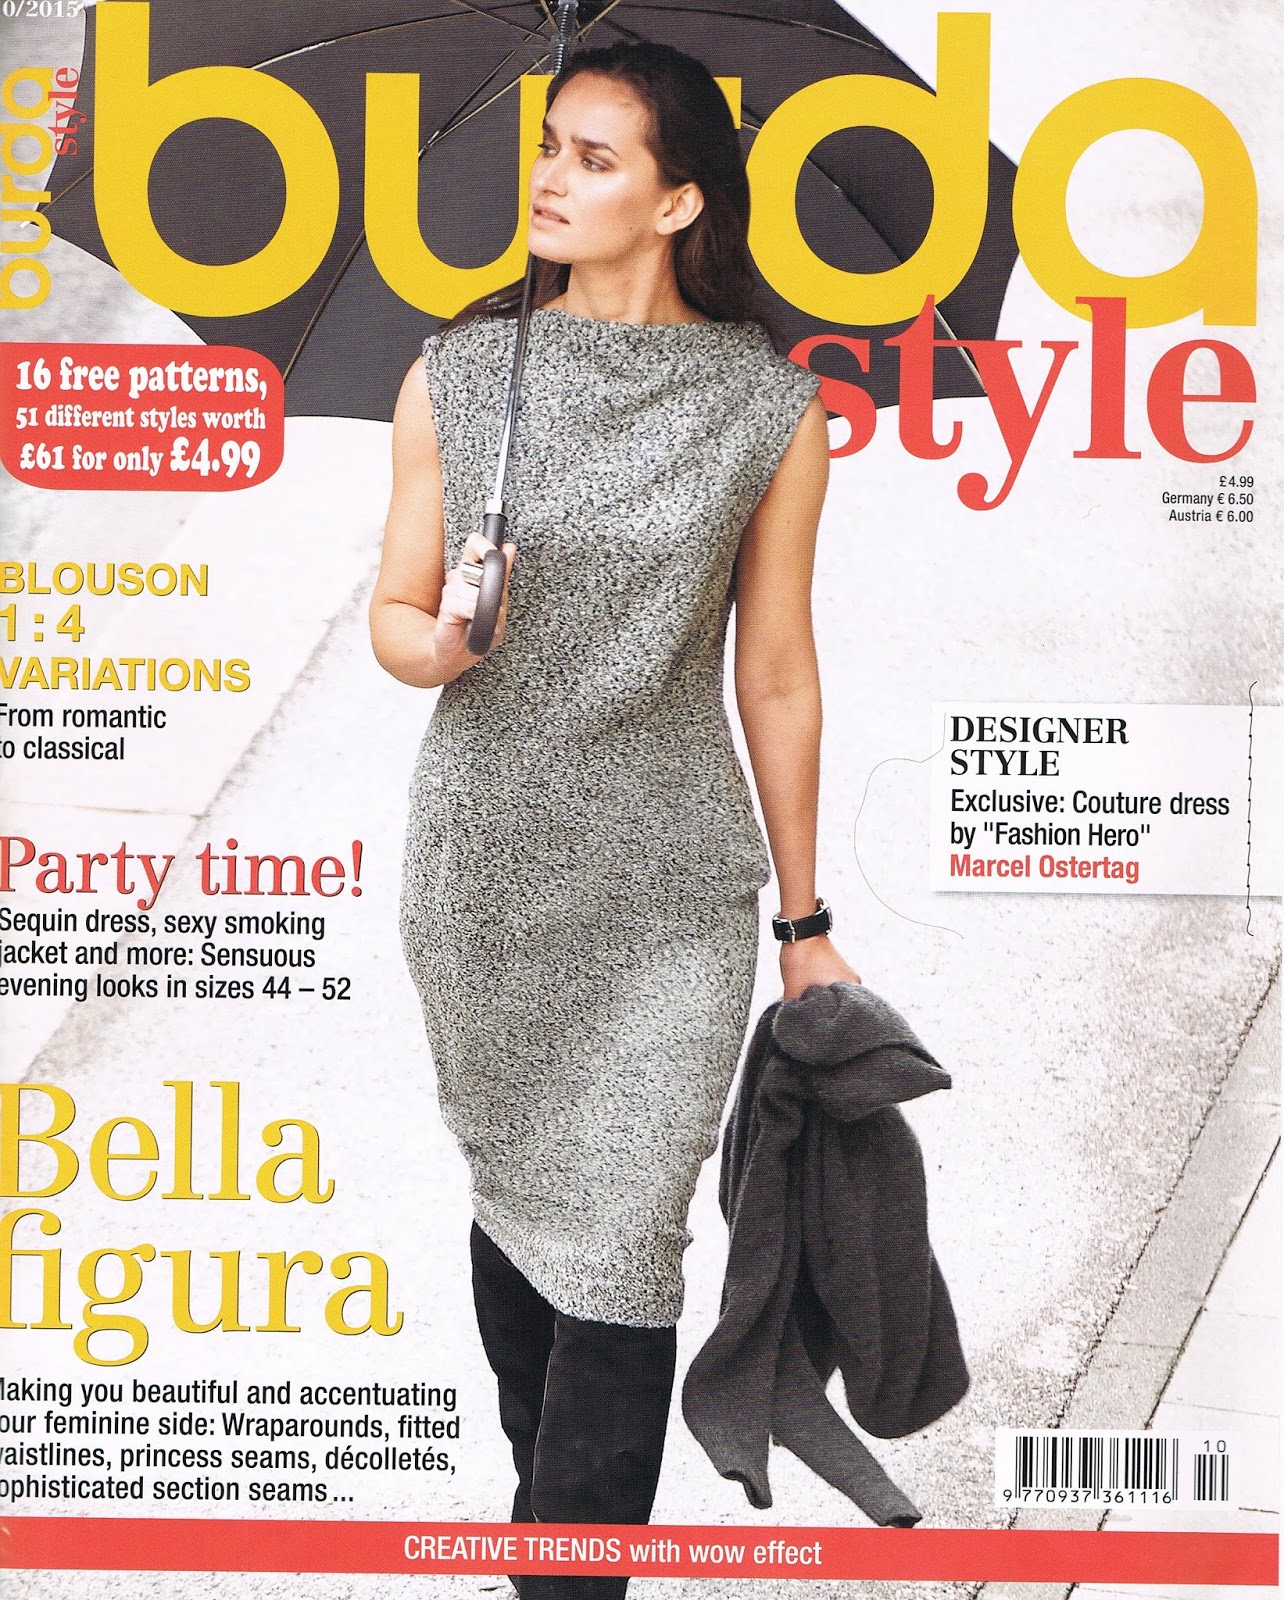 Smf Designs And Friends Burda Style October 2015